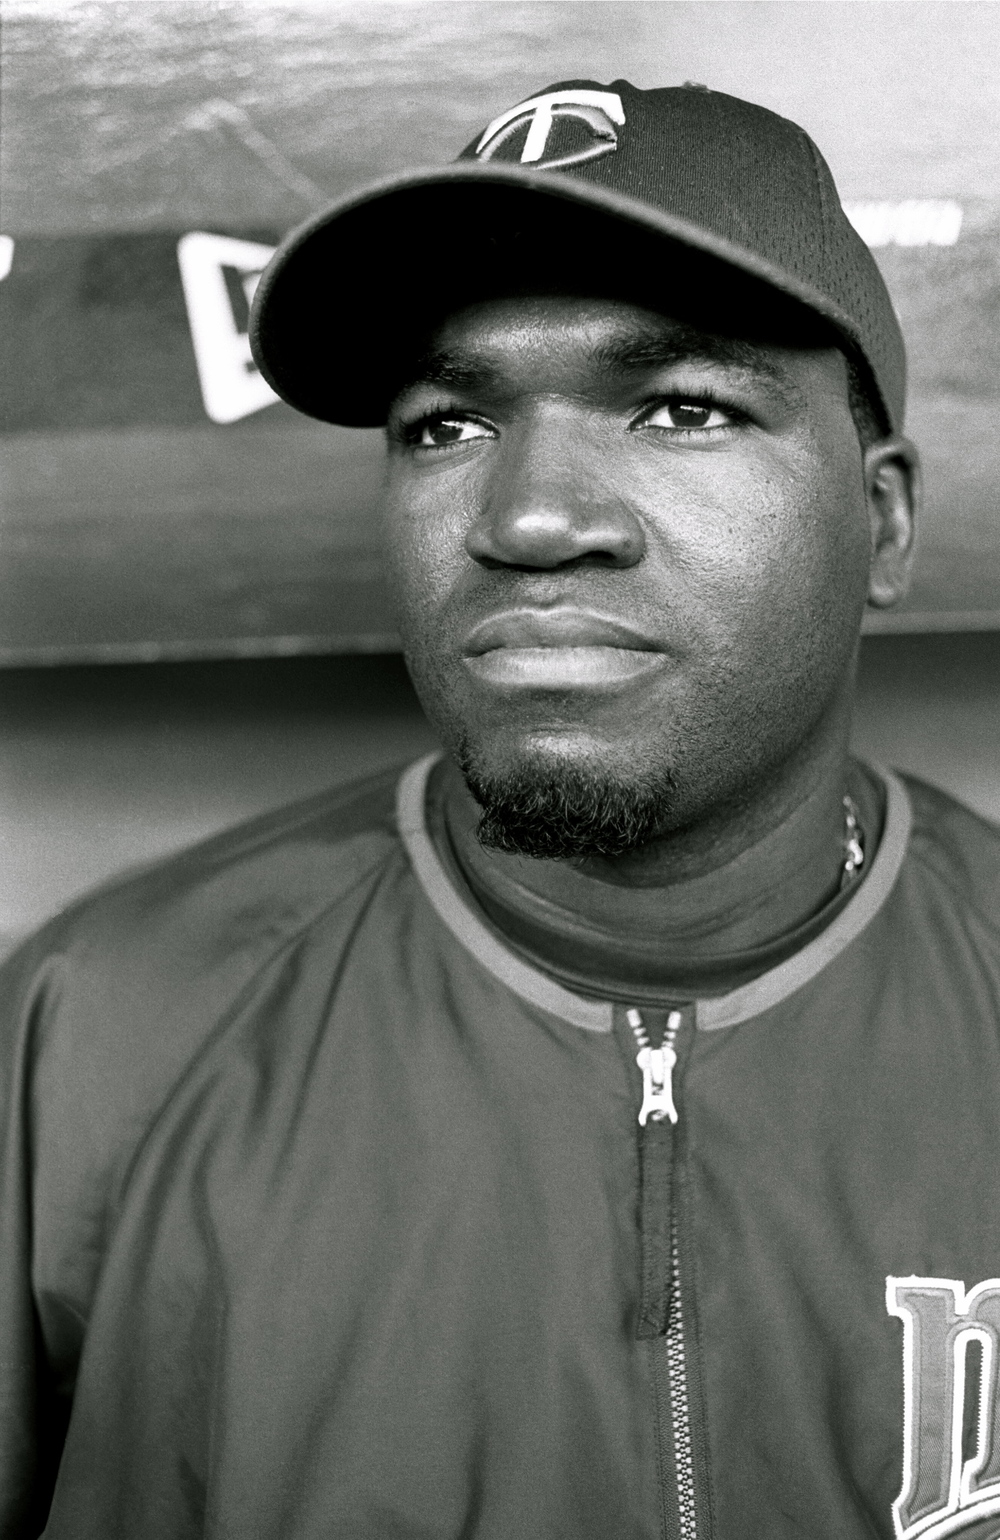 David Ortiz, Minnesota Twins